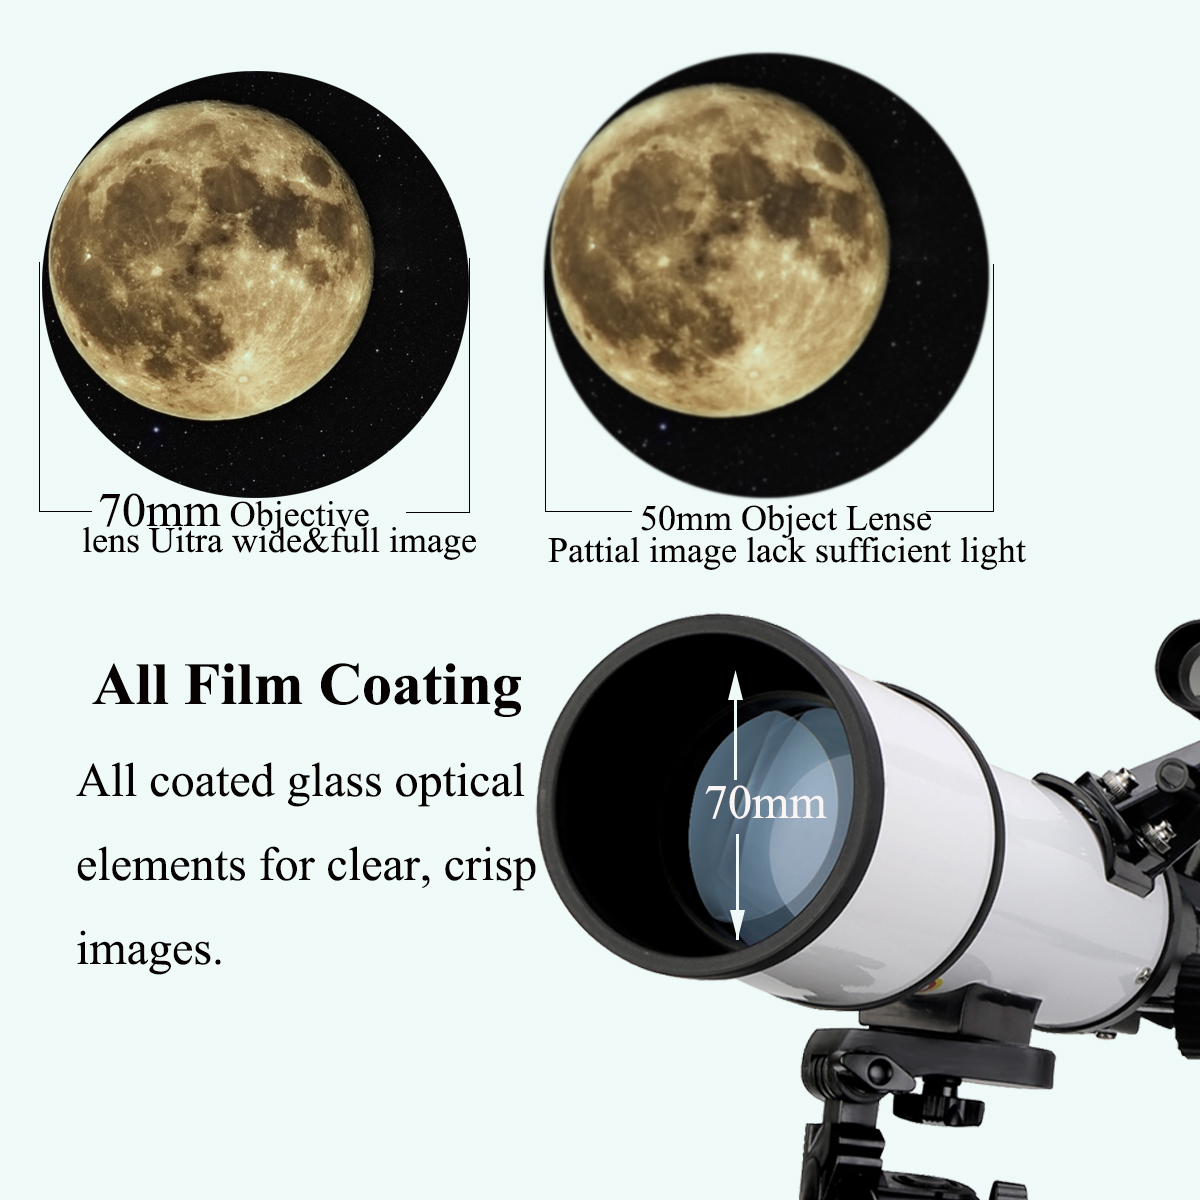 Tools : SVBONY SV501 70 mm Astronomical Telescope  Monocular Moon Bird Watching Kids Adults Astronomy Beginners      No tripod in the Package